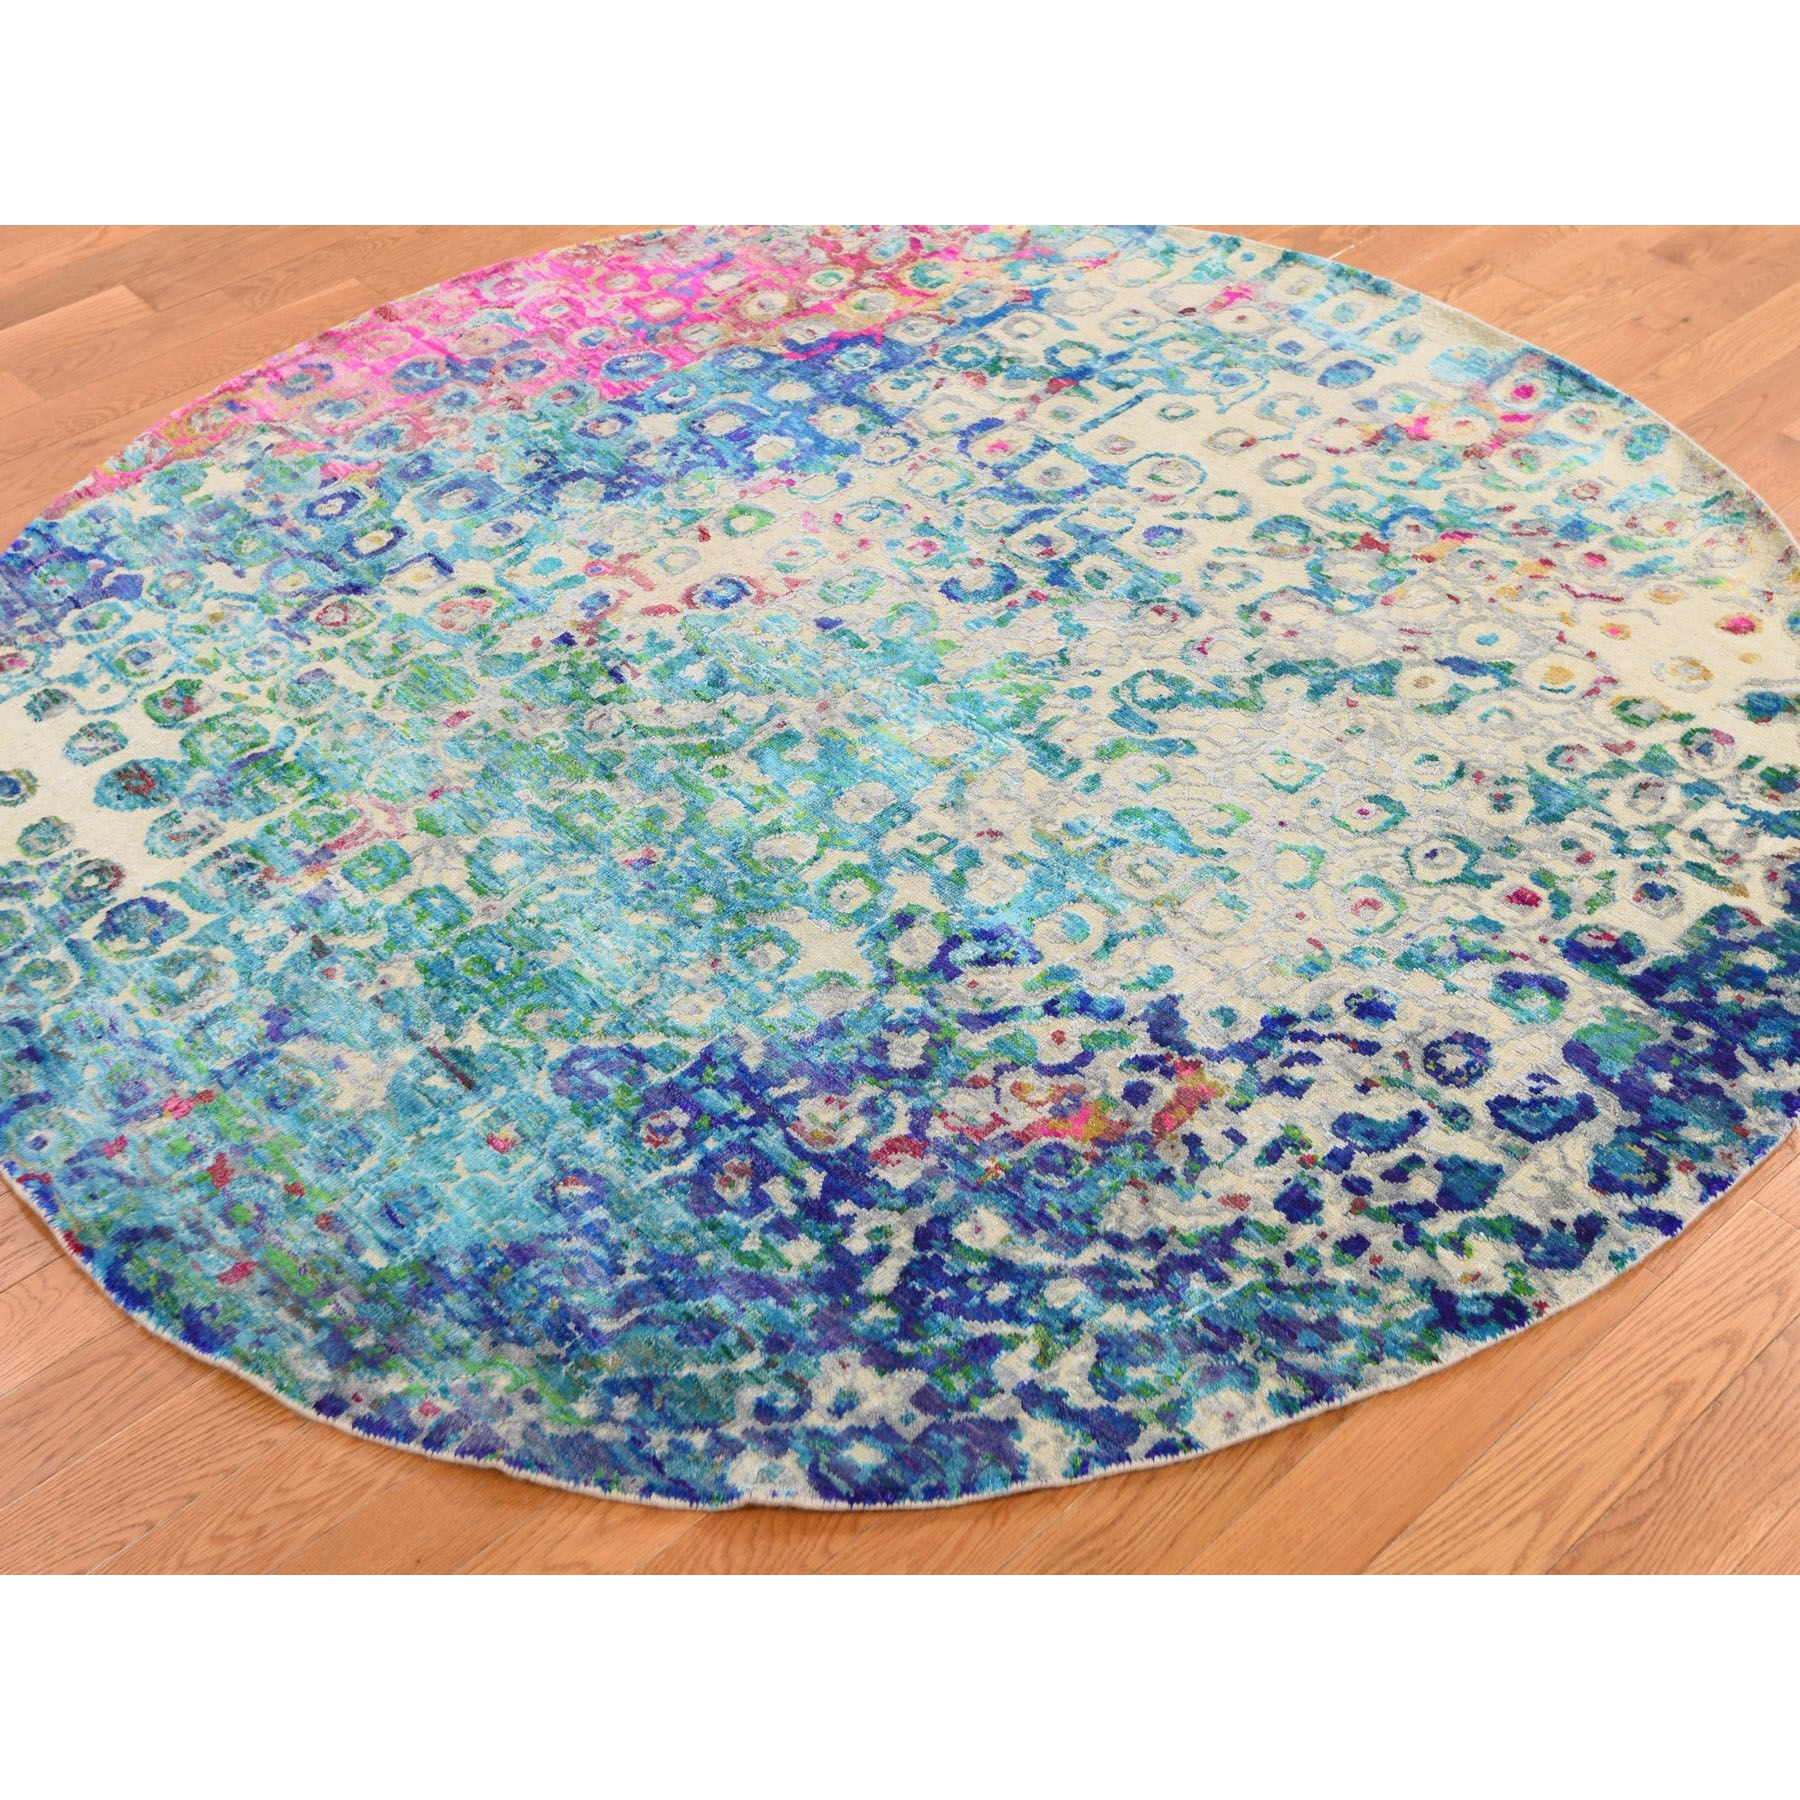 6'x6' THE PEACOCK, Sari Silk Round Colorful Hand Knotted Oriental Rug